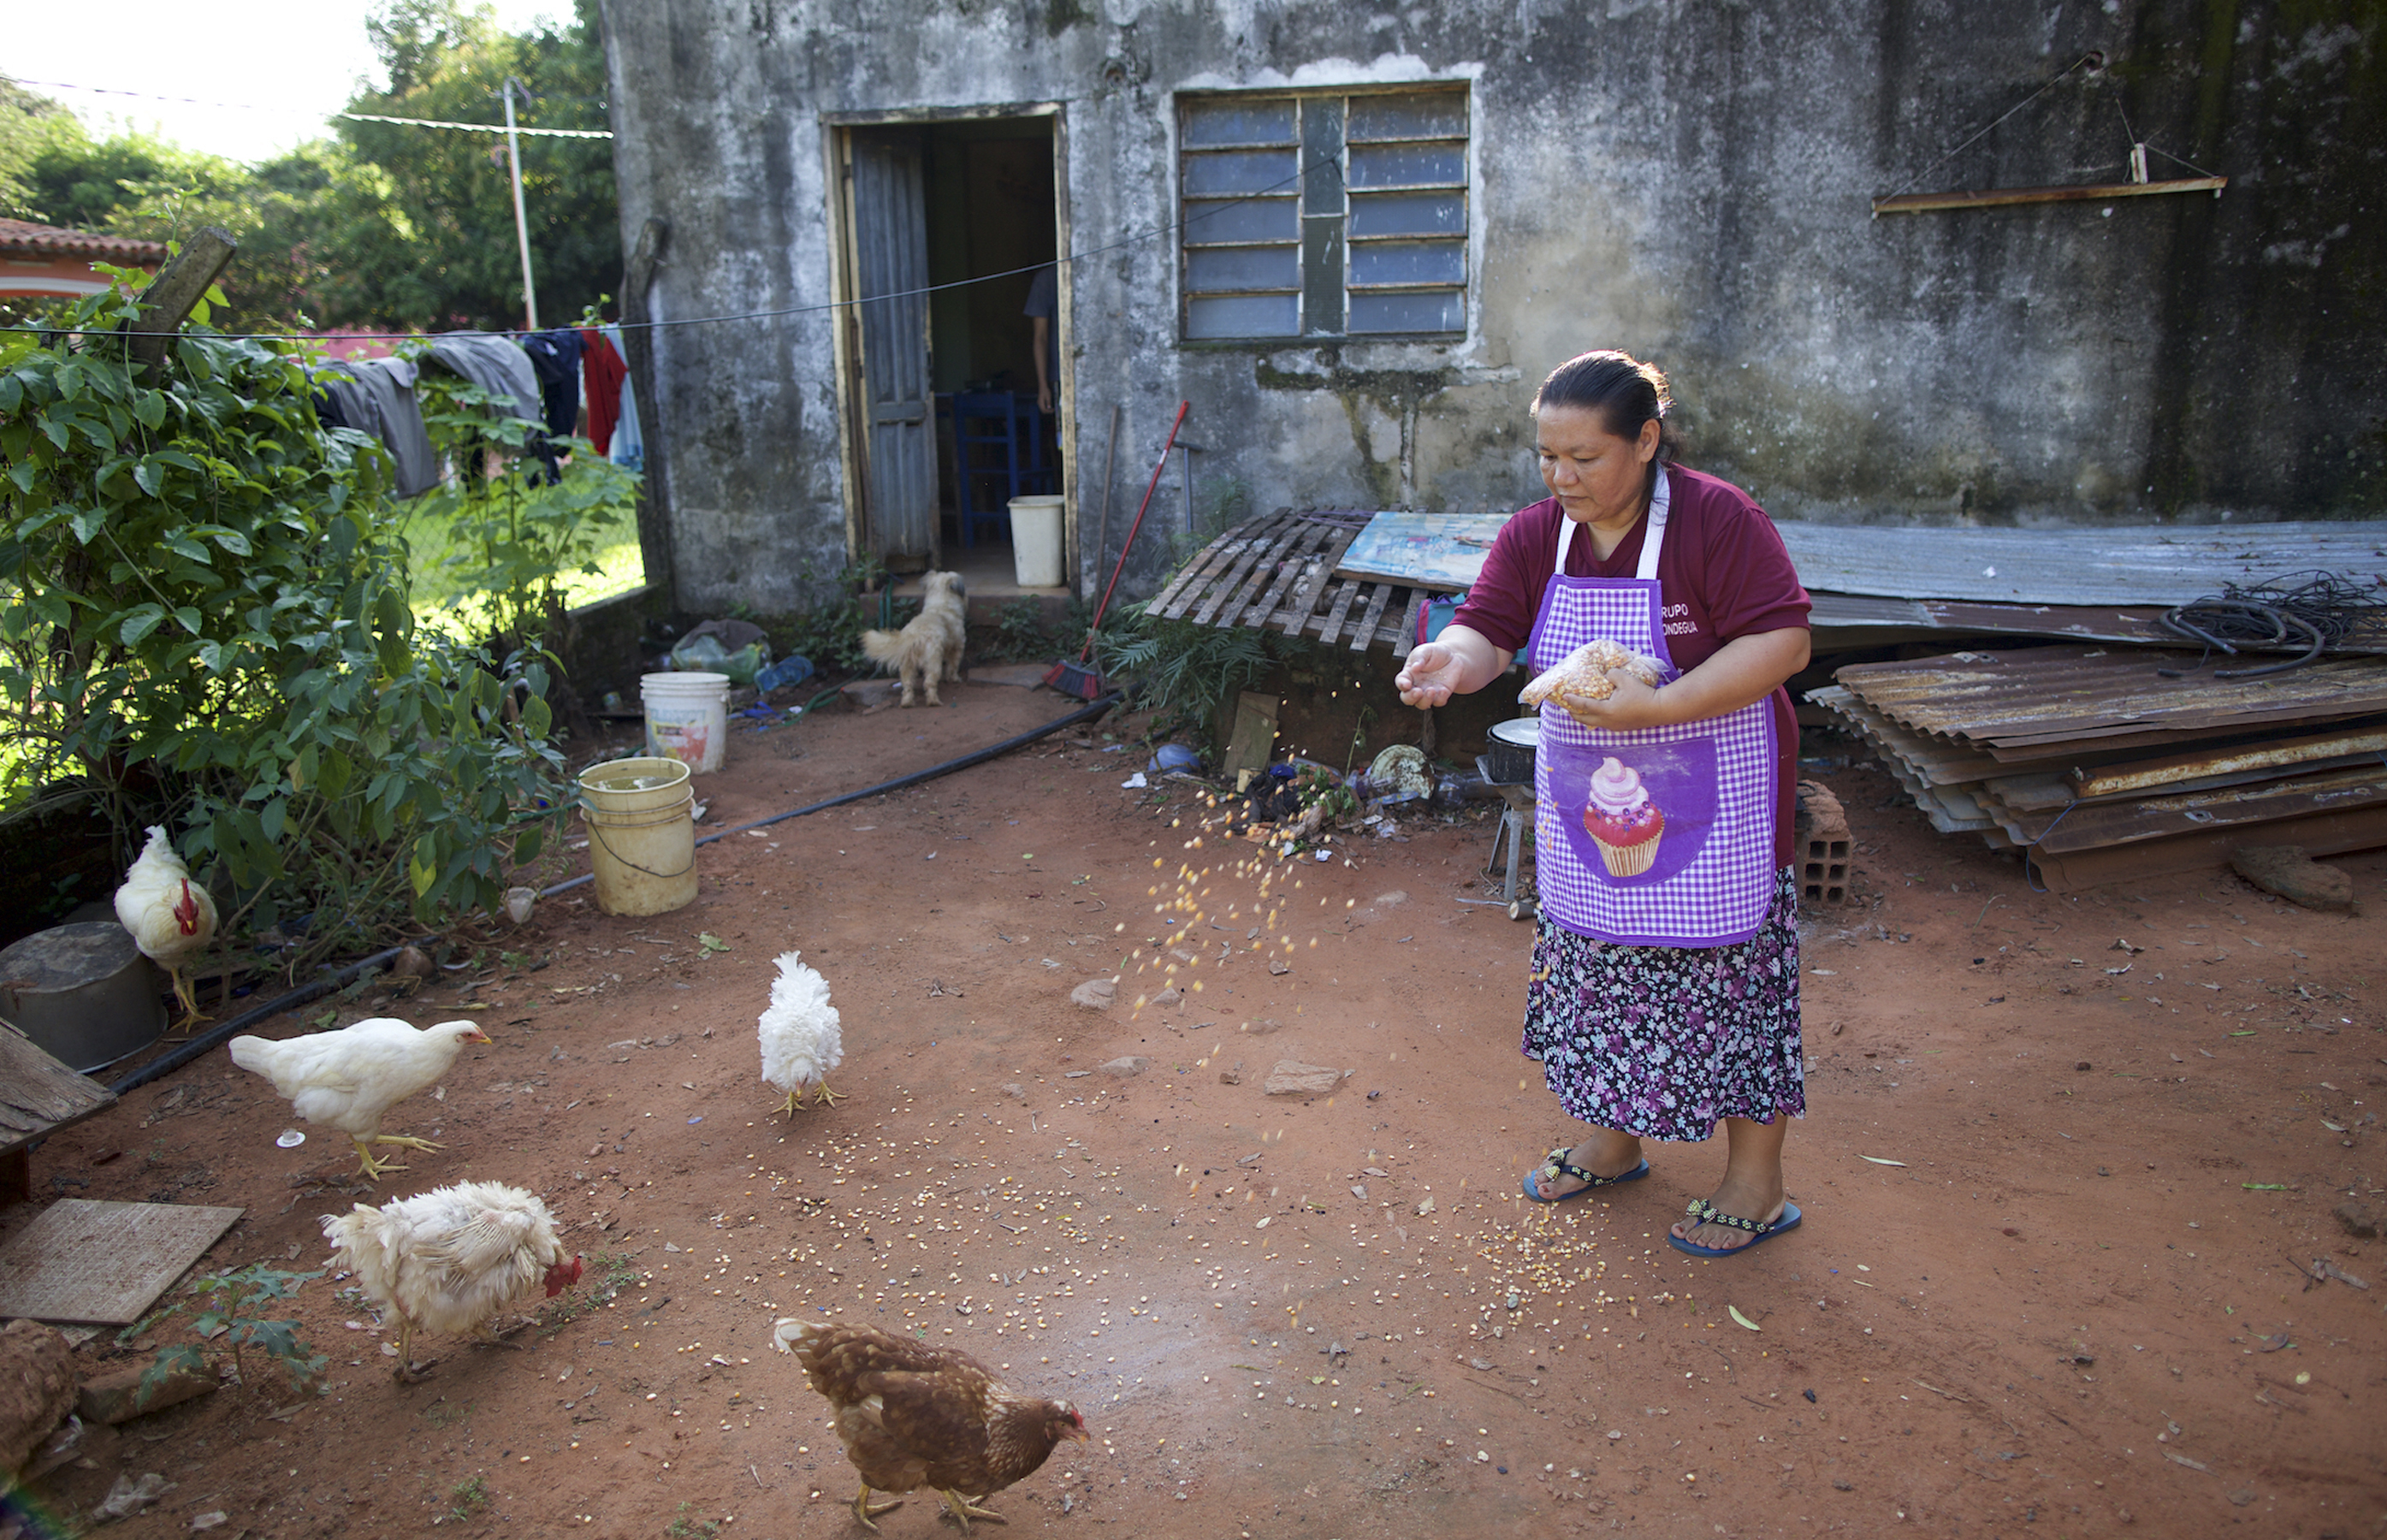 Feeding the chickens is part of running Adriana's small business. Their eggs provide an essential ingredient in her bread.